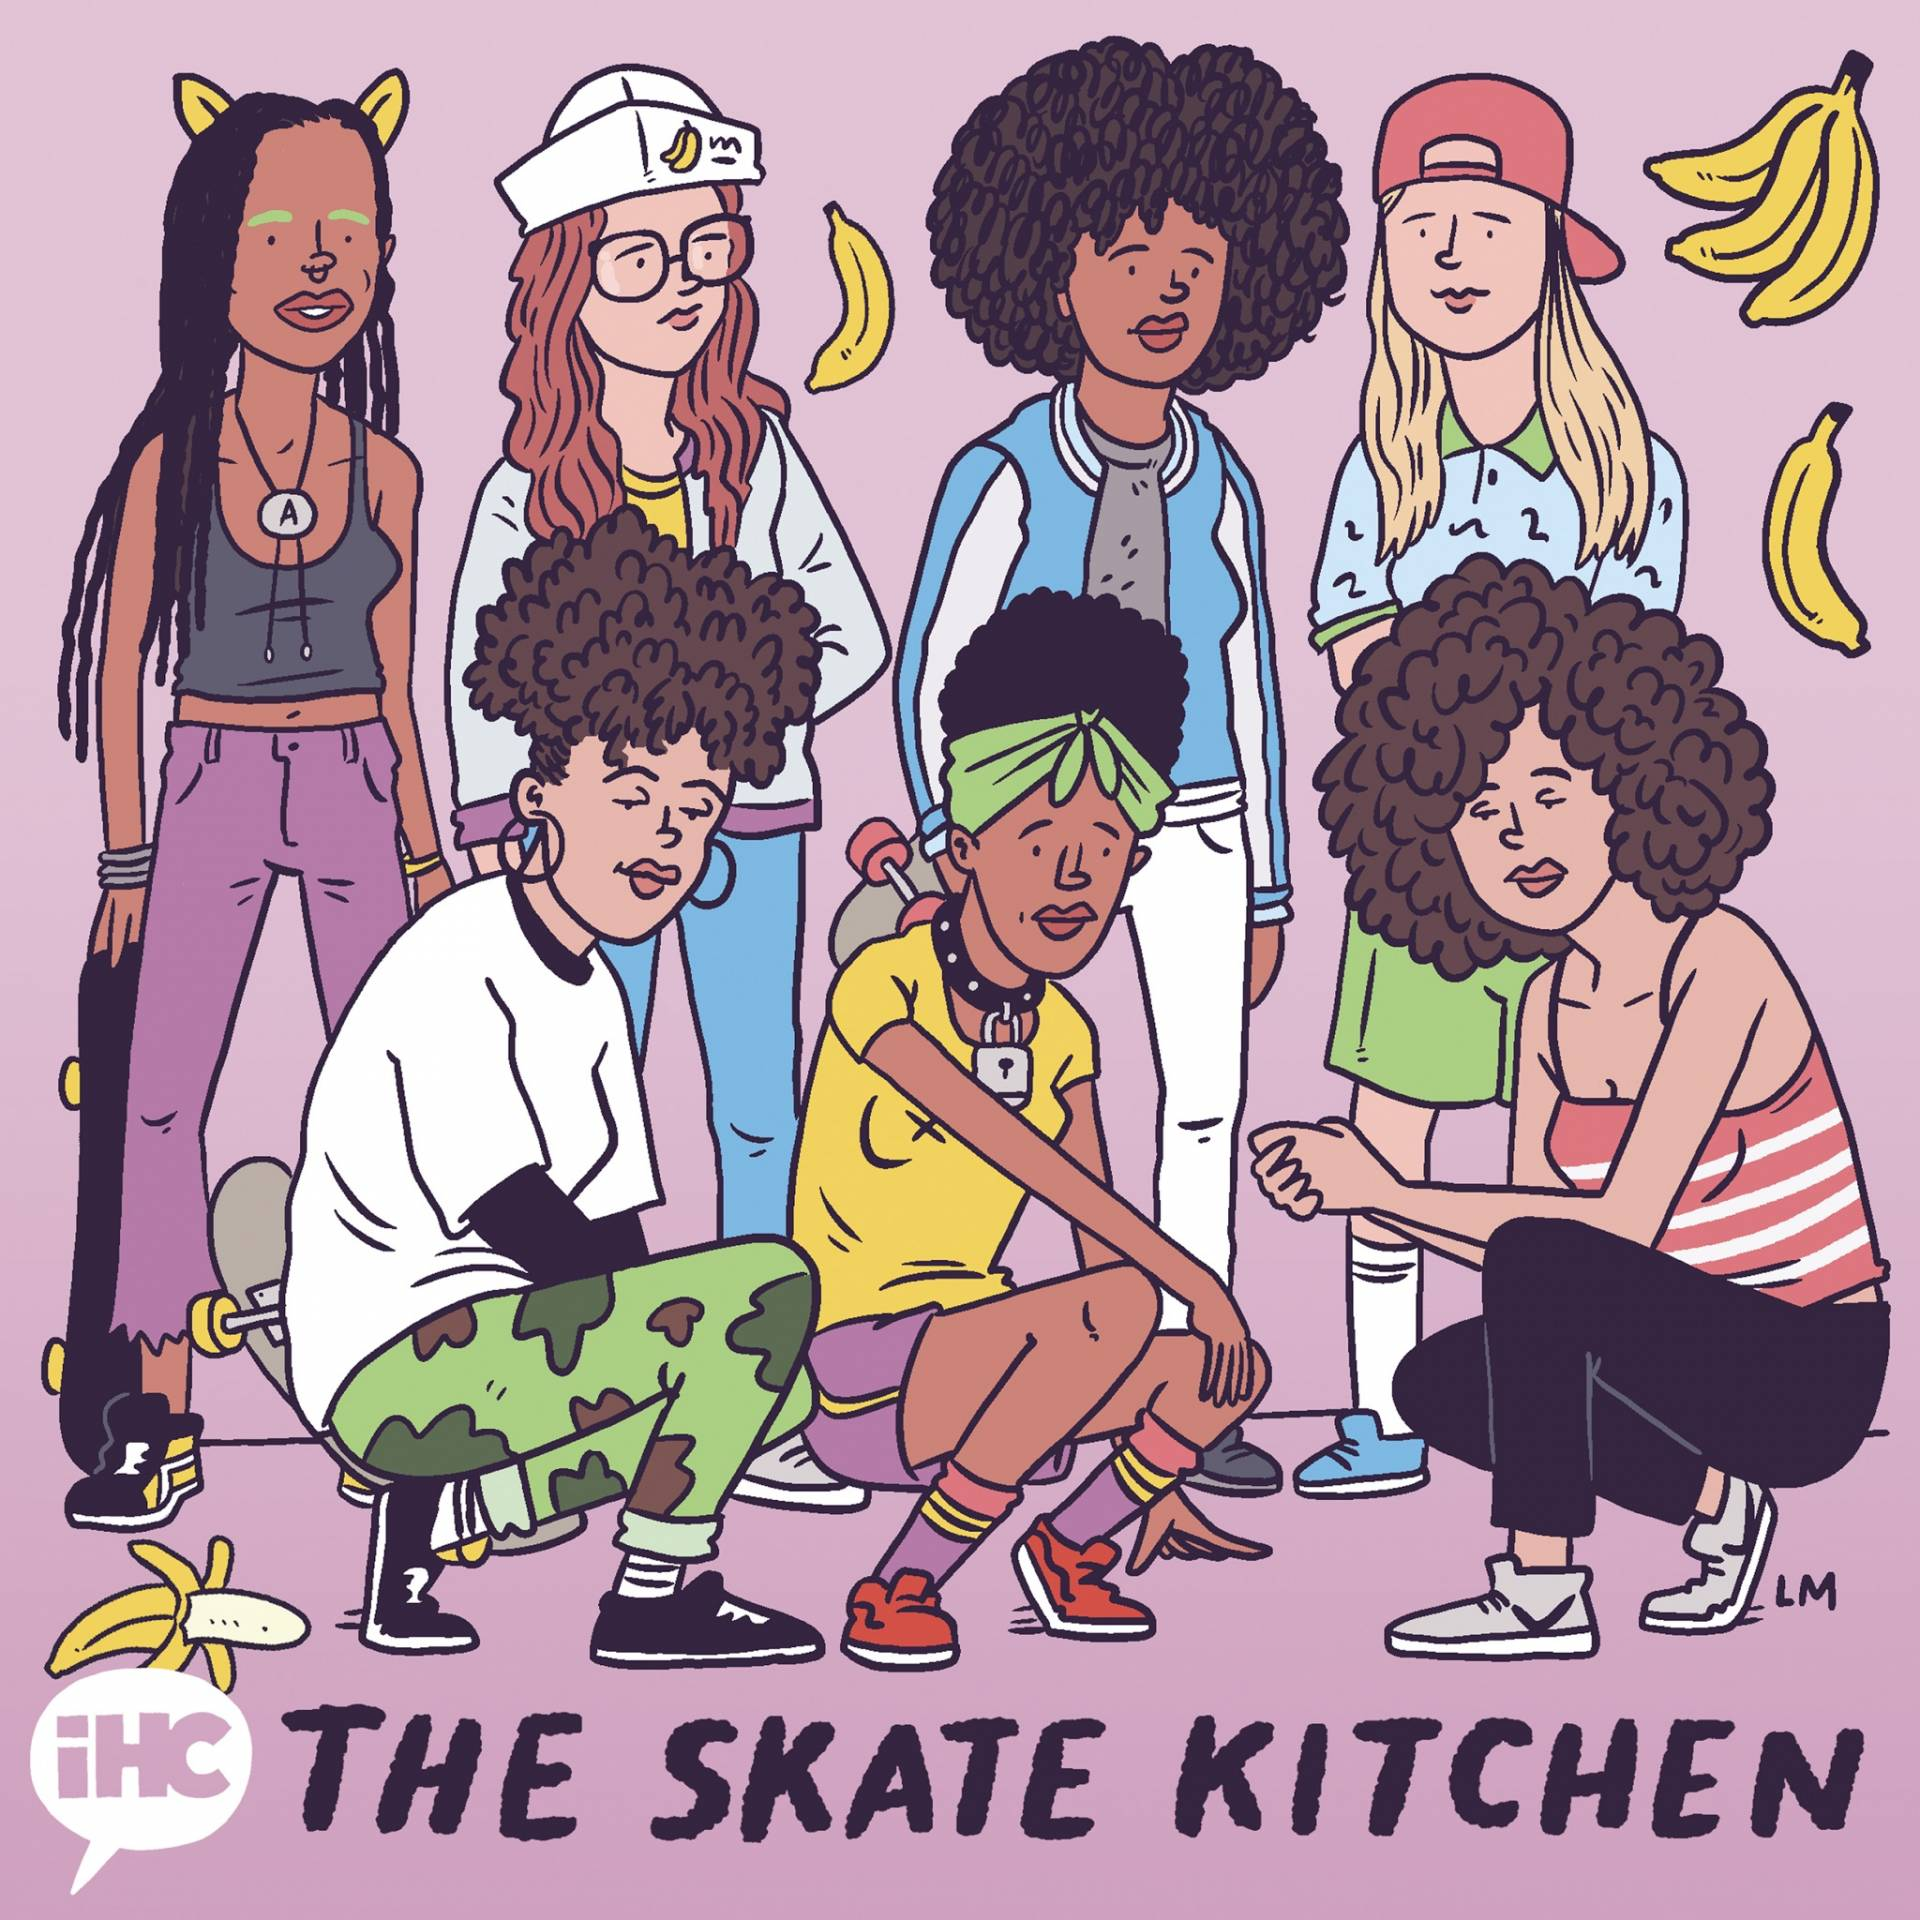 ee91179f5eda We also worked with the Darkroom and Interscope to coordinate promotion  surrounding the soundtrack release. Additionally, IHC created our own Skate  Kitchen ...